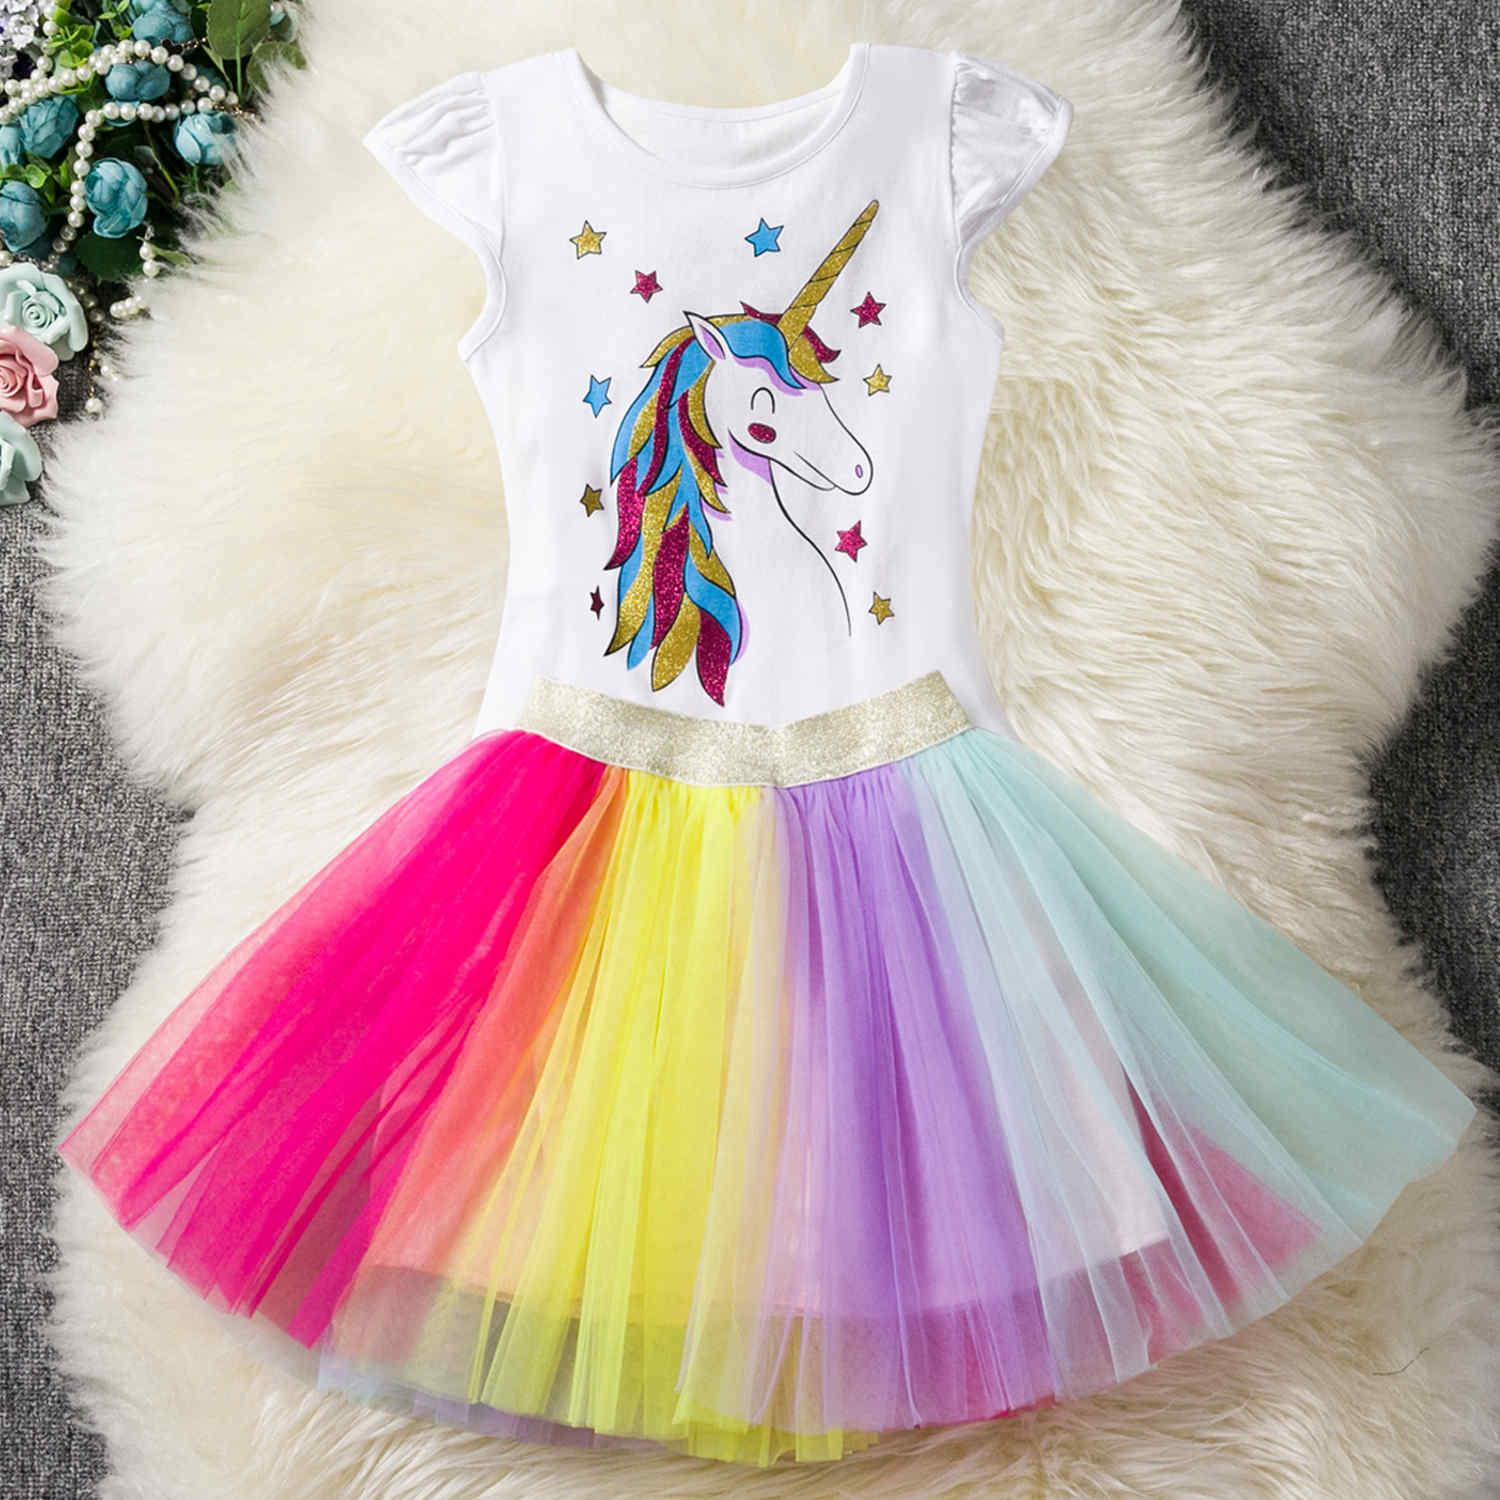 US Princess Kids Baby Girls Flower Tops T-shirt Tulle Skirt Dress Outfit Clothes